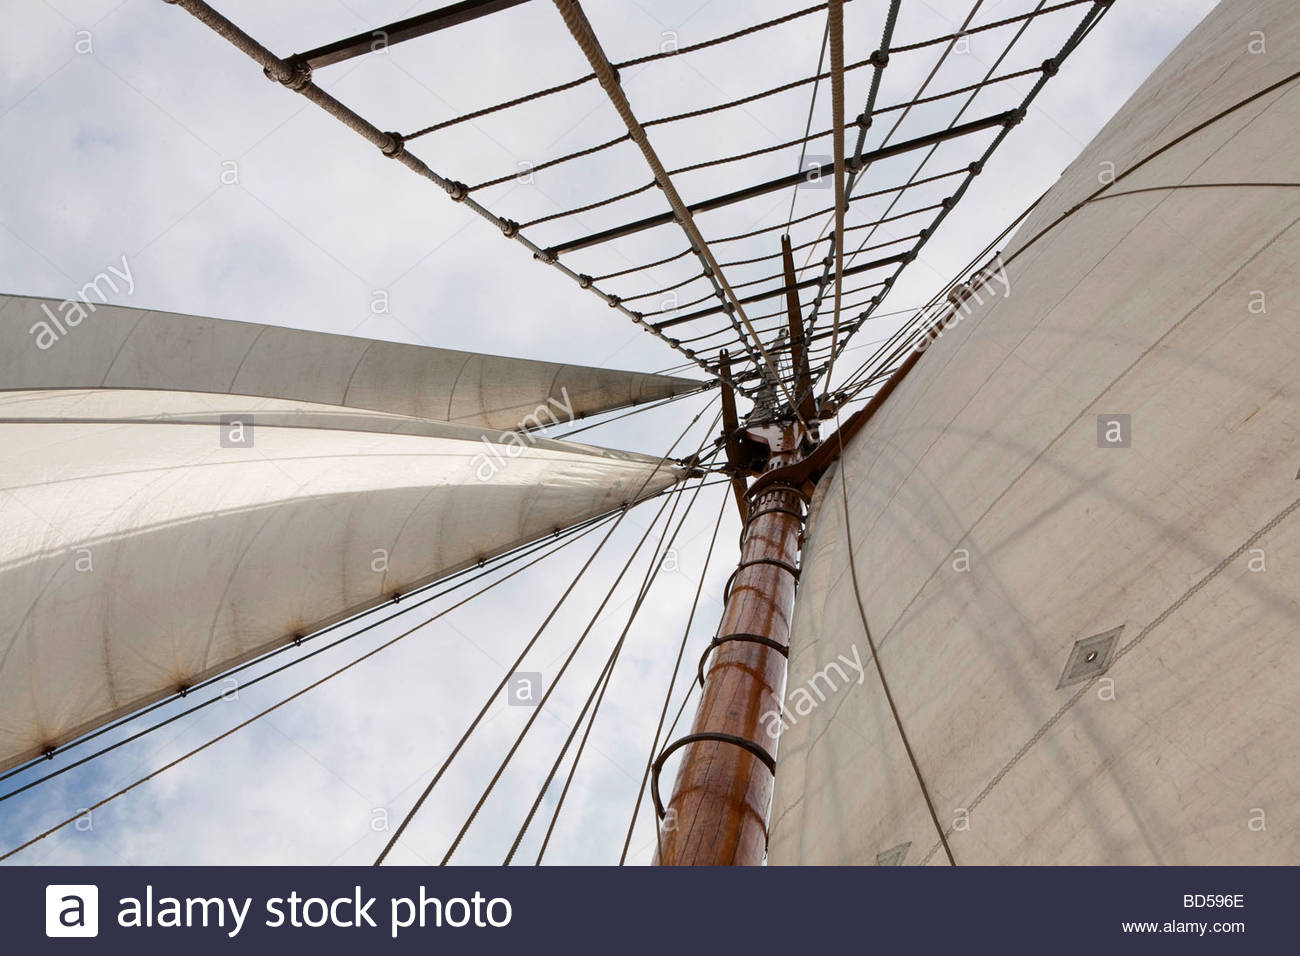 The mast of sail ship m aux Kathrina Finland - Stock Image